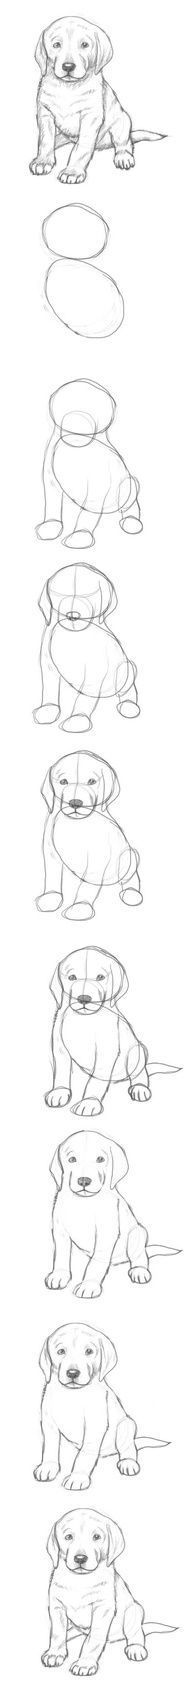 how to draw a puppy http://profotolib.com/picture.php?/73901/categories